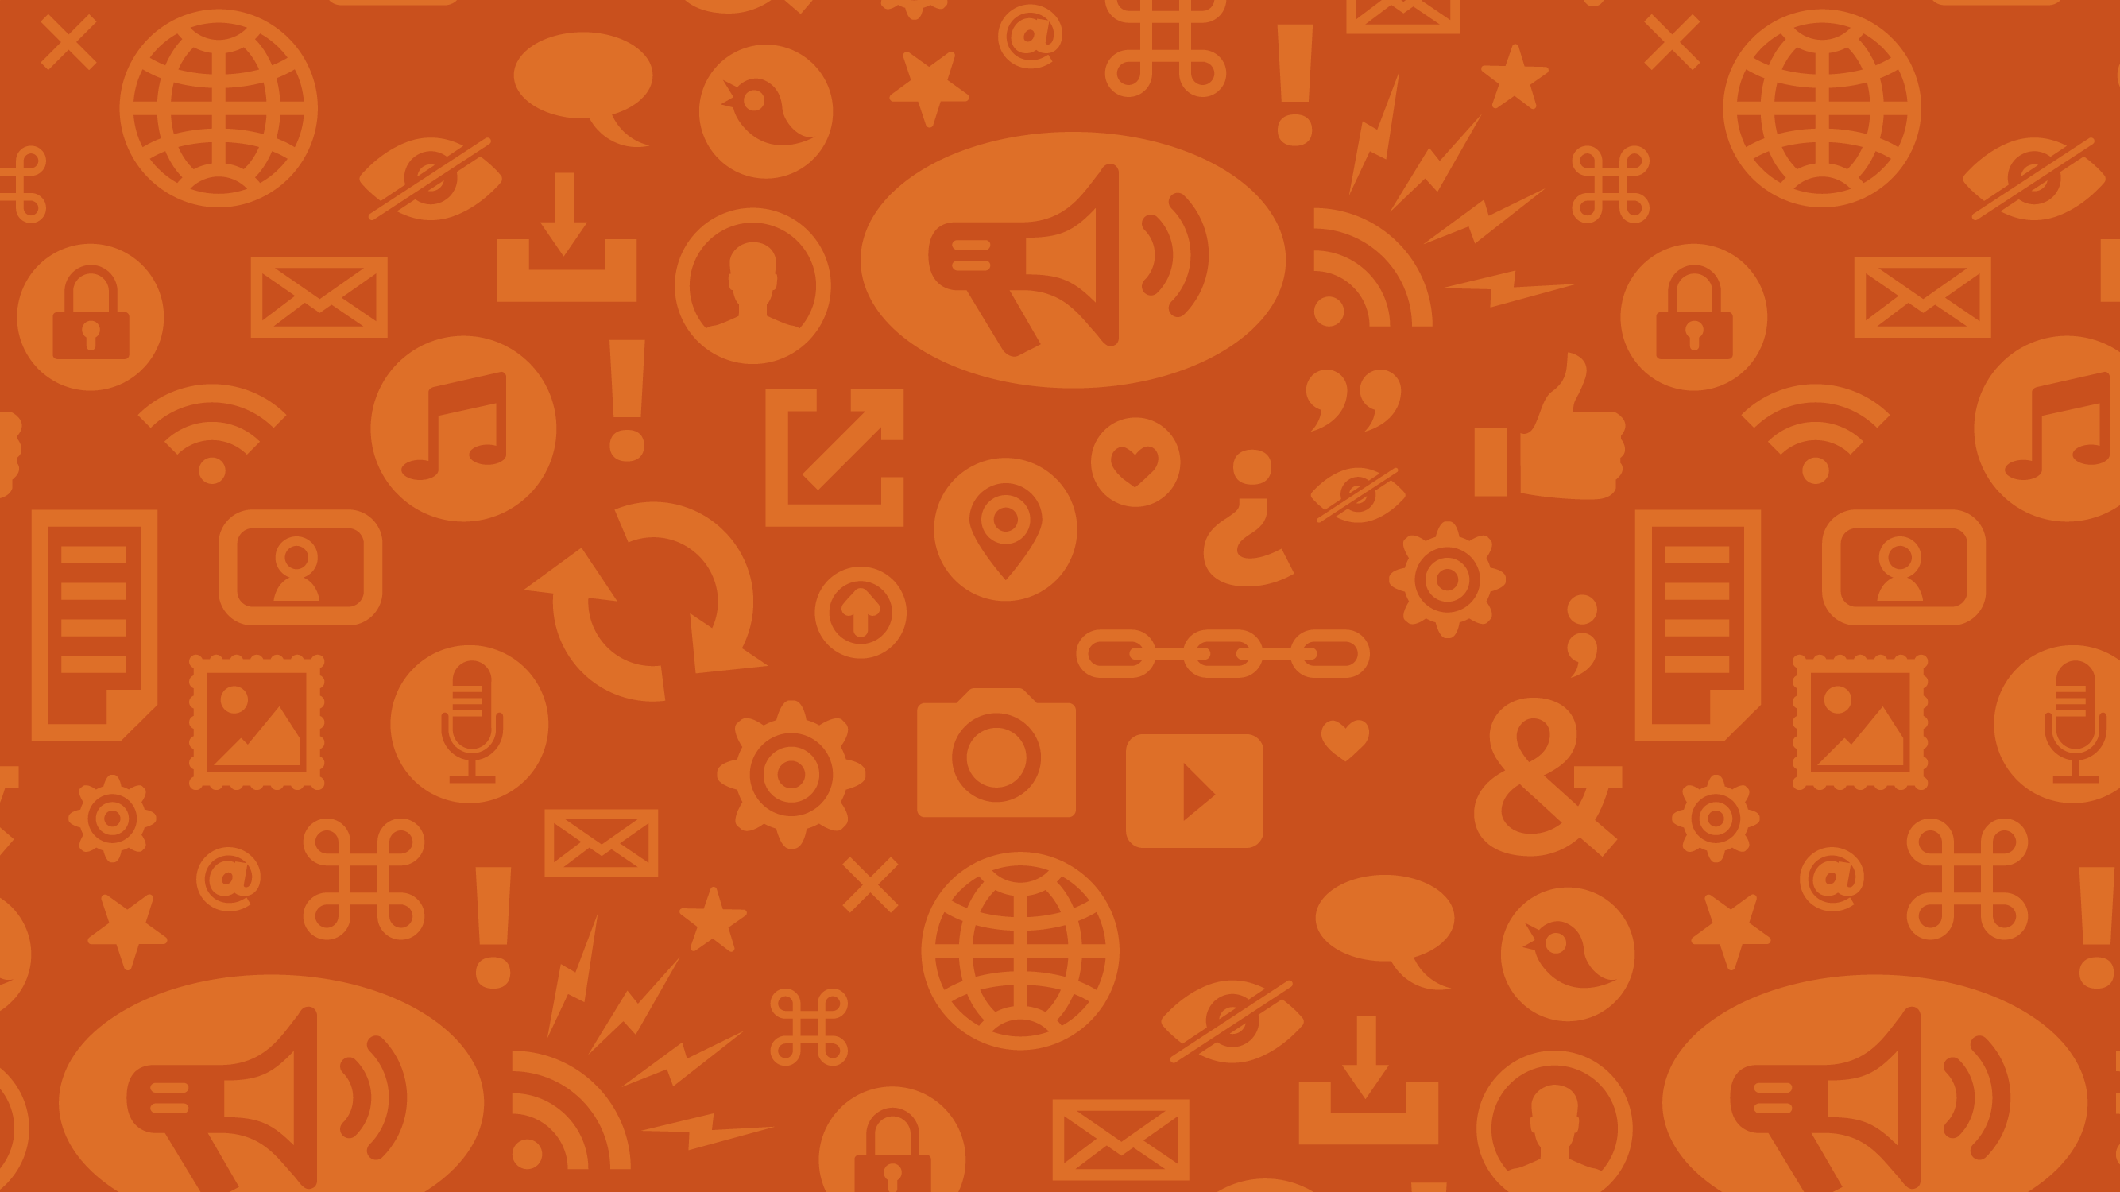 dark red background with orange internet and speech symbols